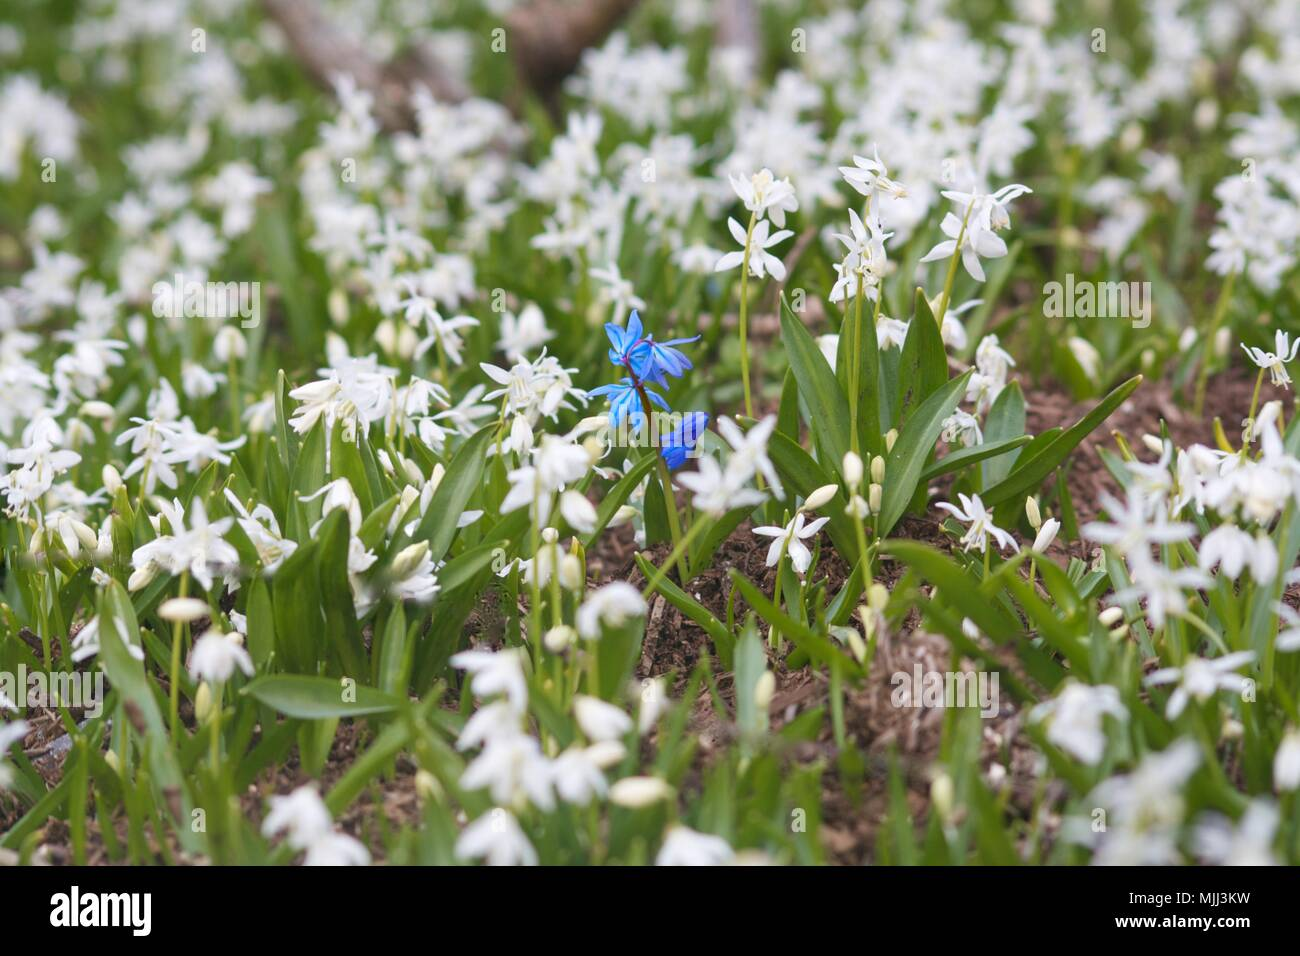 Single Bluebell Among Lots Of White Flowers And Grass In Spring